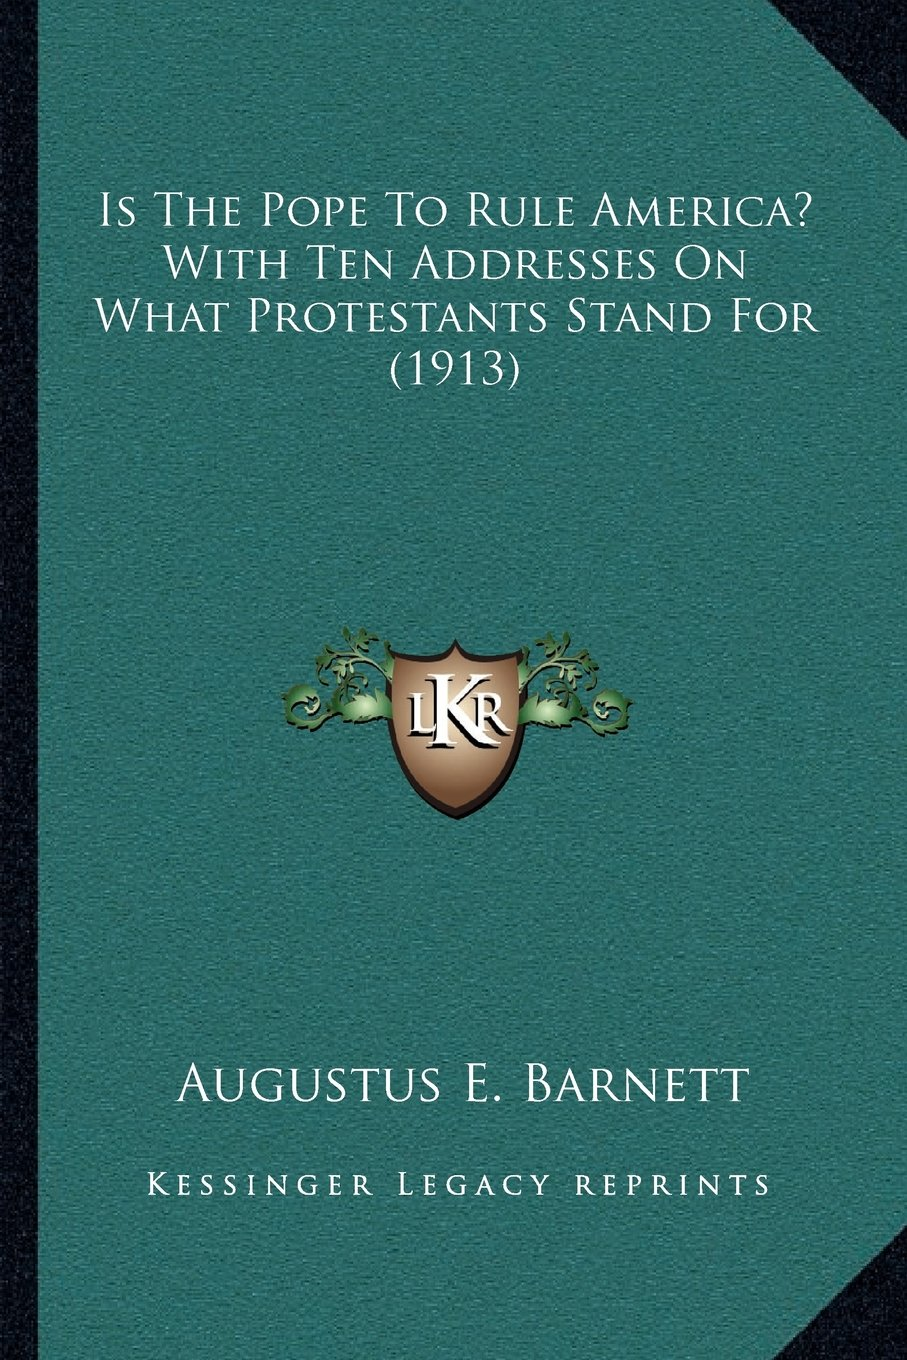 Is The Pope To Rule America? With Ten Addresses On What Protestants Stand For (1913) ebook